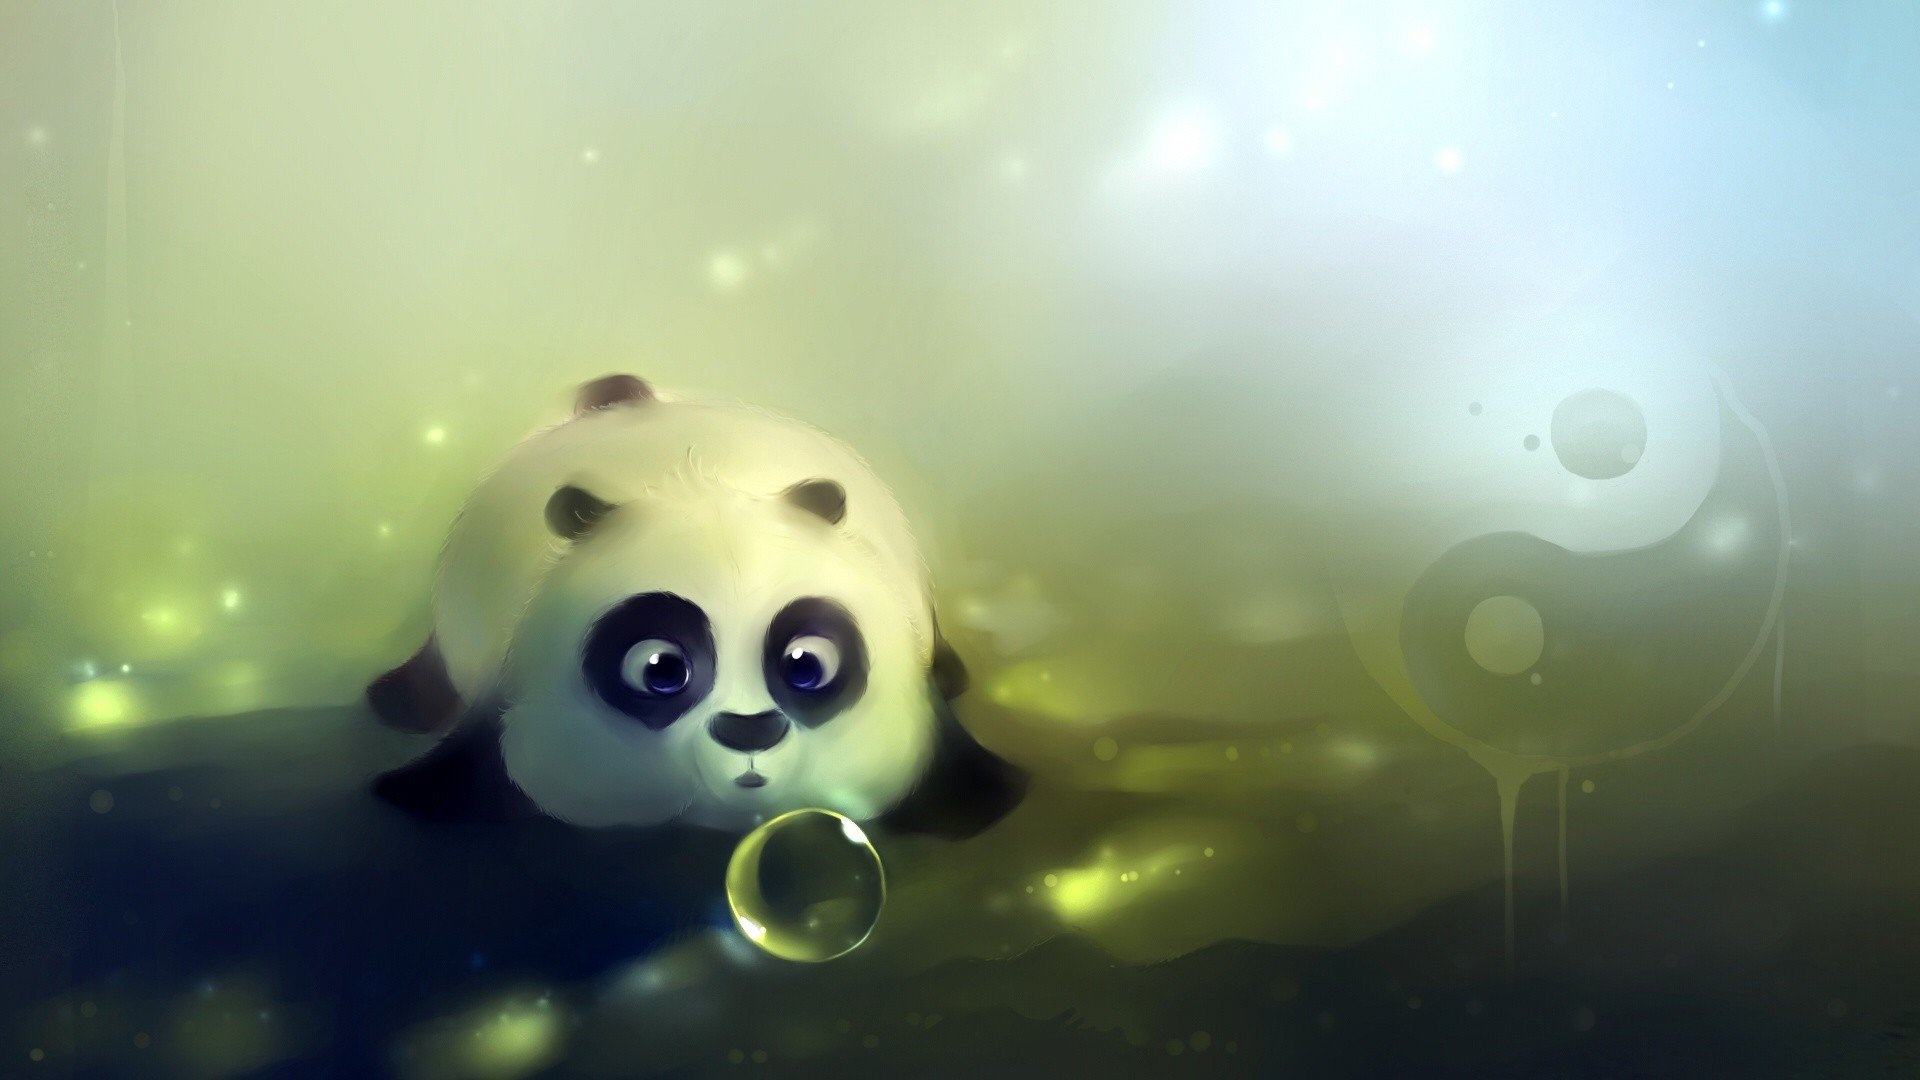 Cute Panda Images 19201080 121823 HD Wallpaper Res 1920x1080 1920x1080